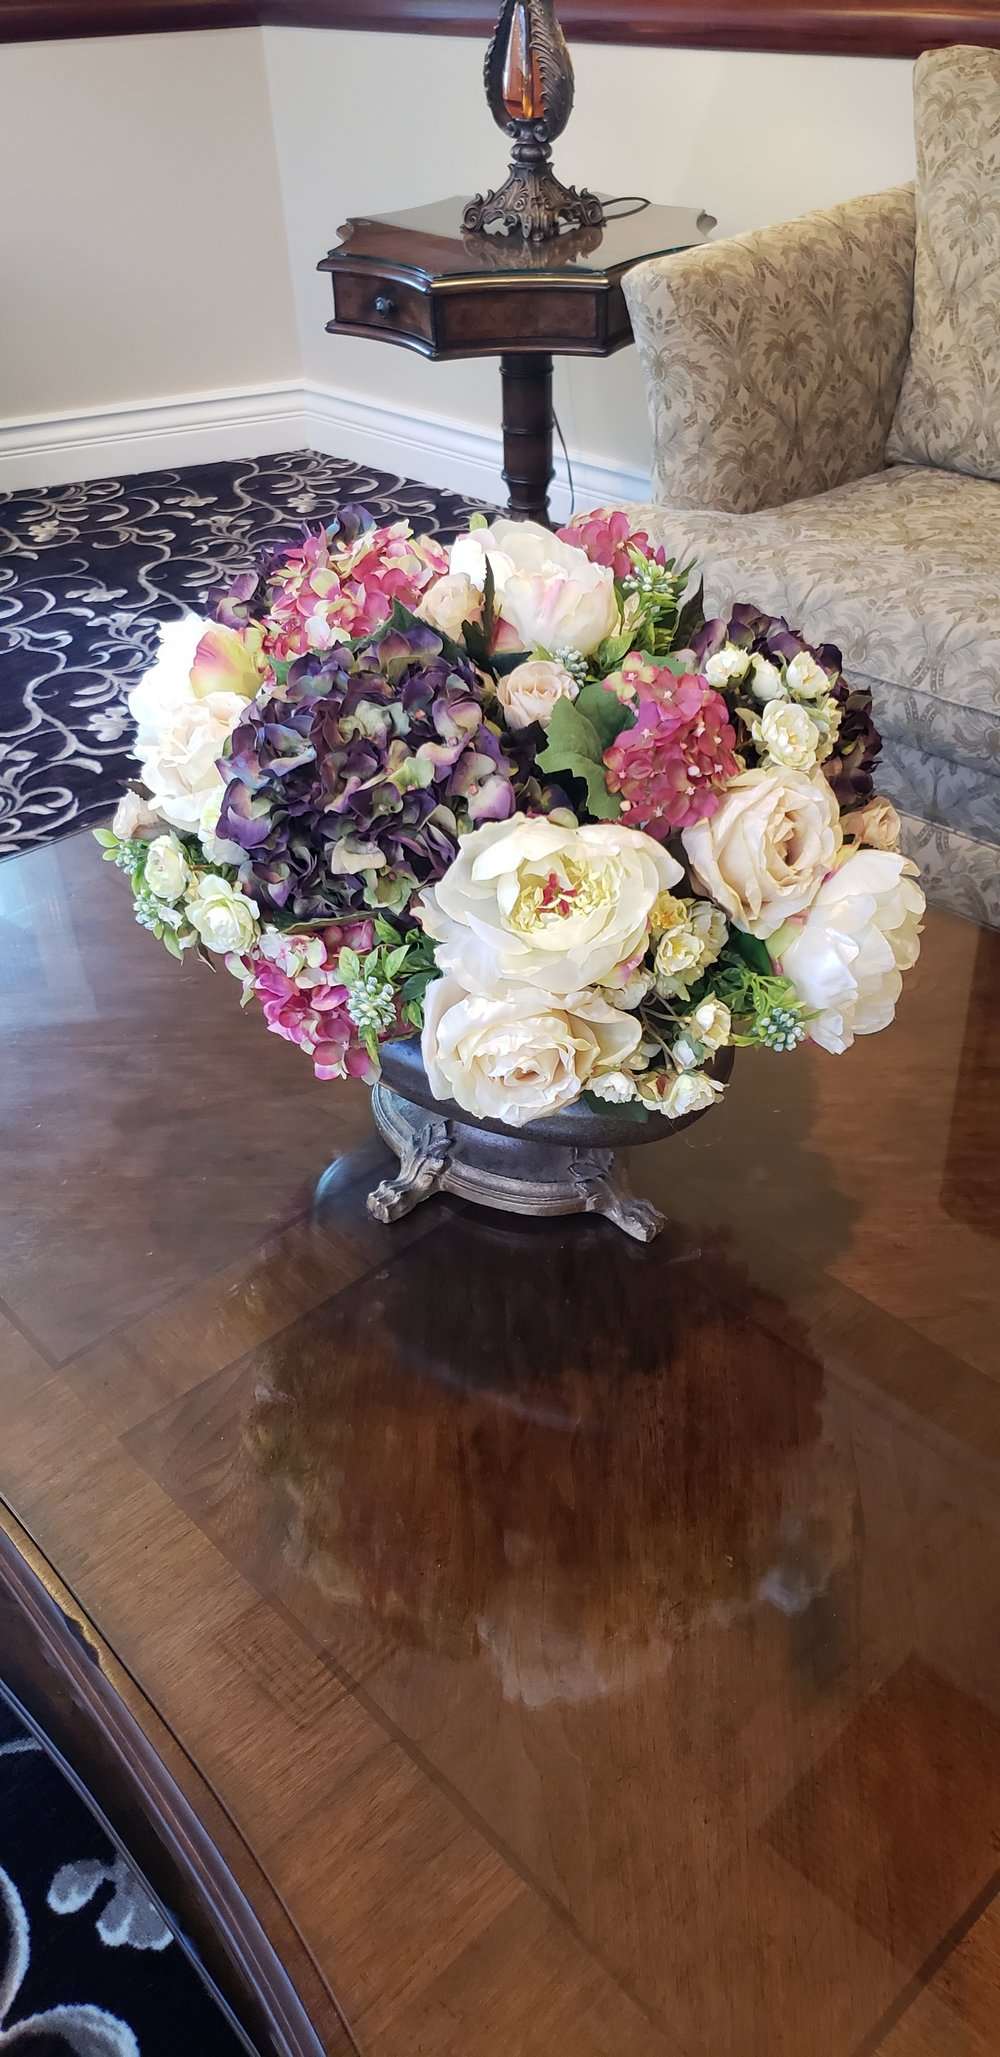 Arrangement on coffee table in hotel lobby